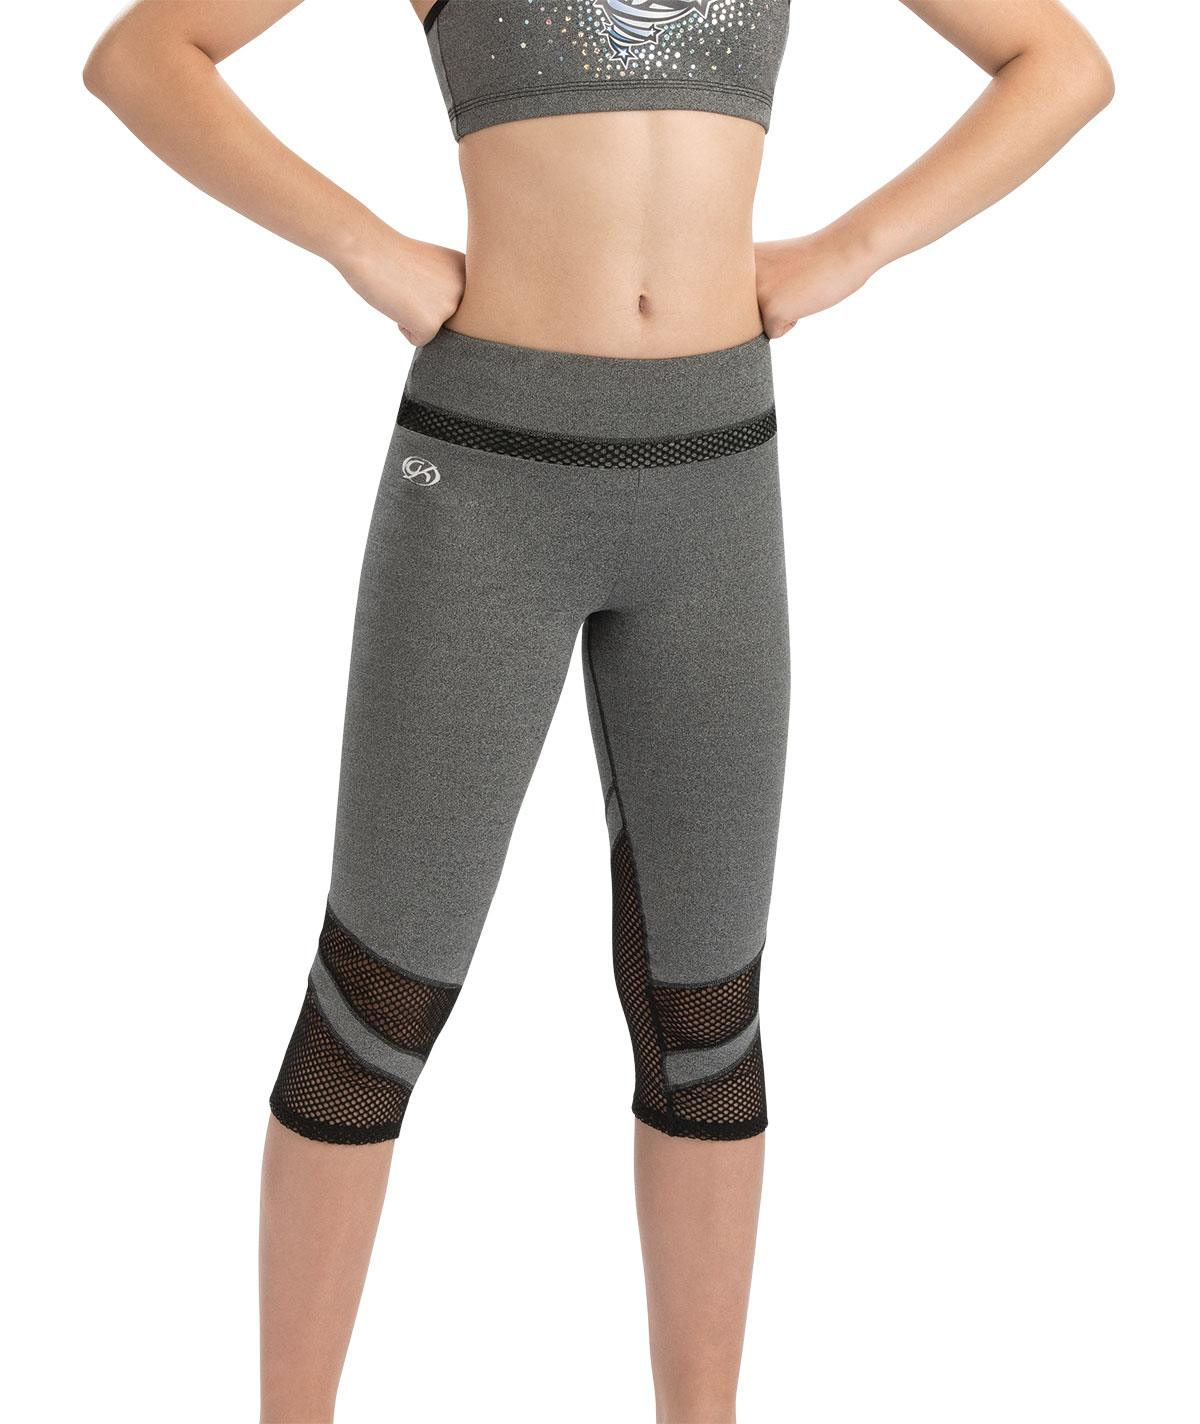 GK All Star High Waisted Performance Capris